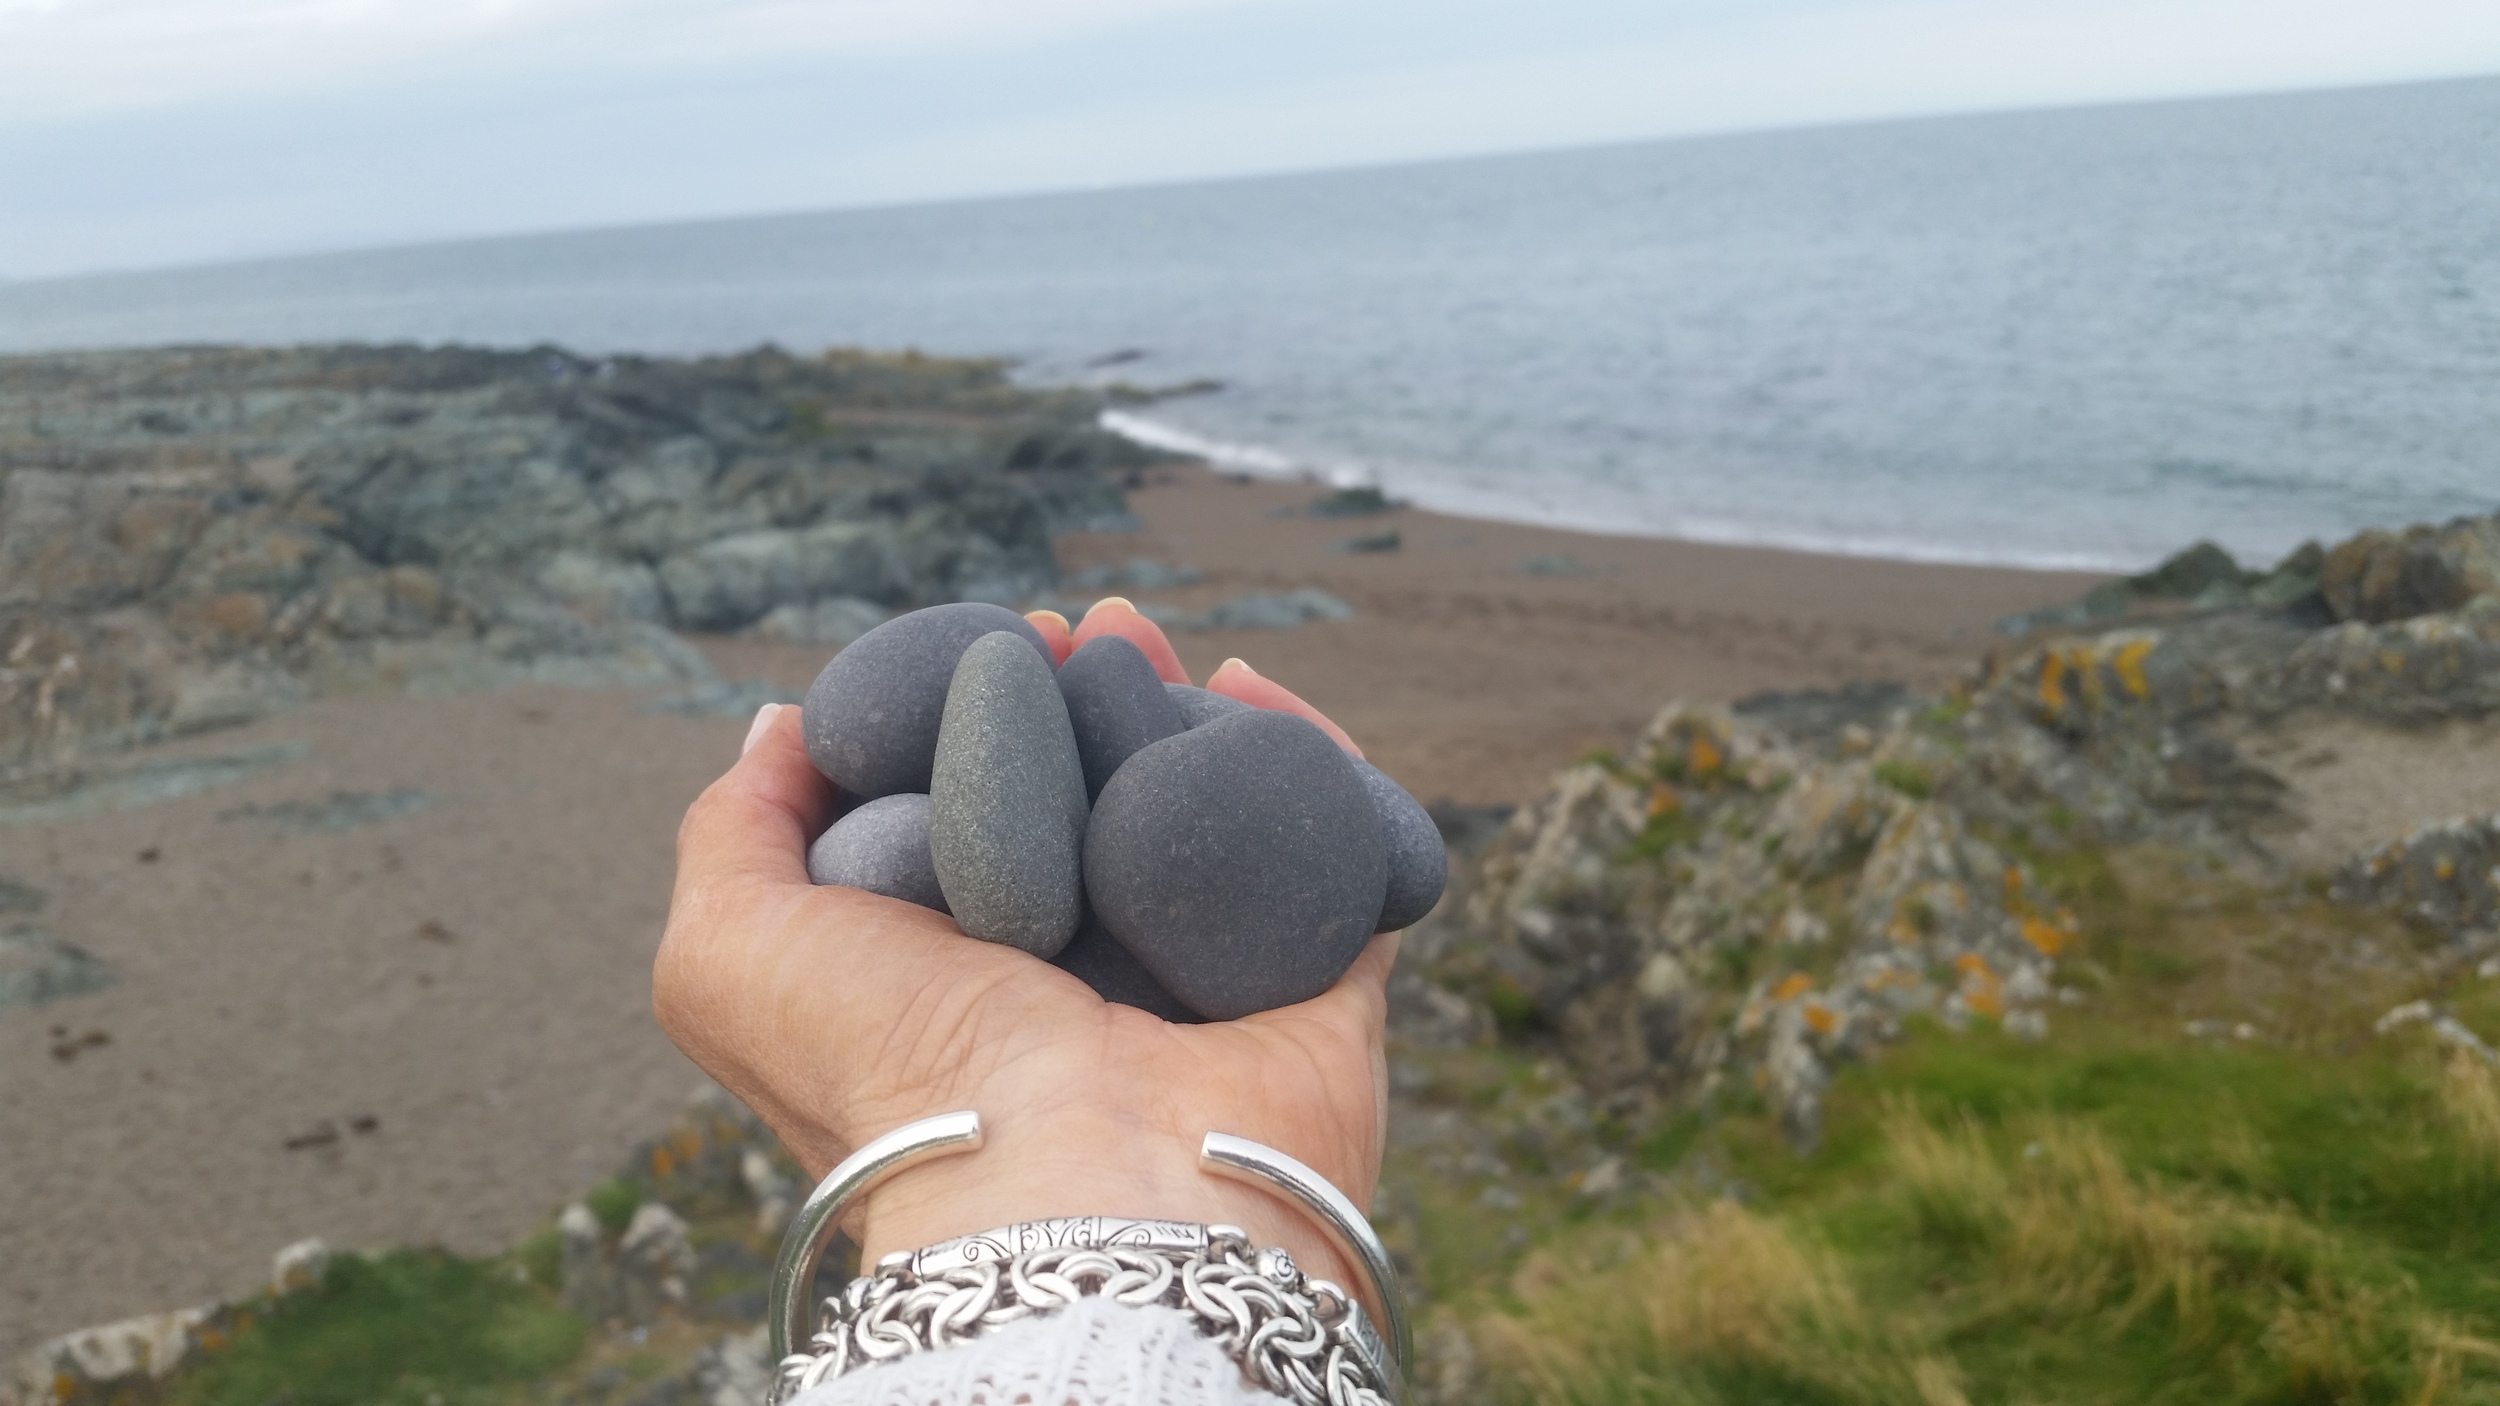 The gorgeous grey stones...brought these home with me.  Also, had an AMAZING lunch at The Happy Pear in Greystones! If you are ever in the area, you must stop by and check it out....healthy eating at its BEST.   www.thehappypear.ie